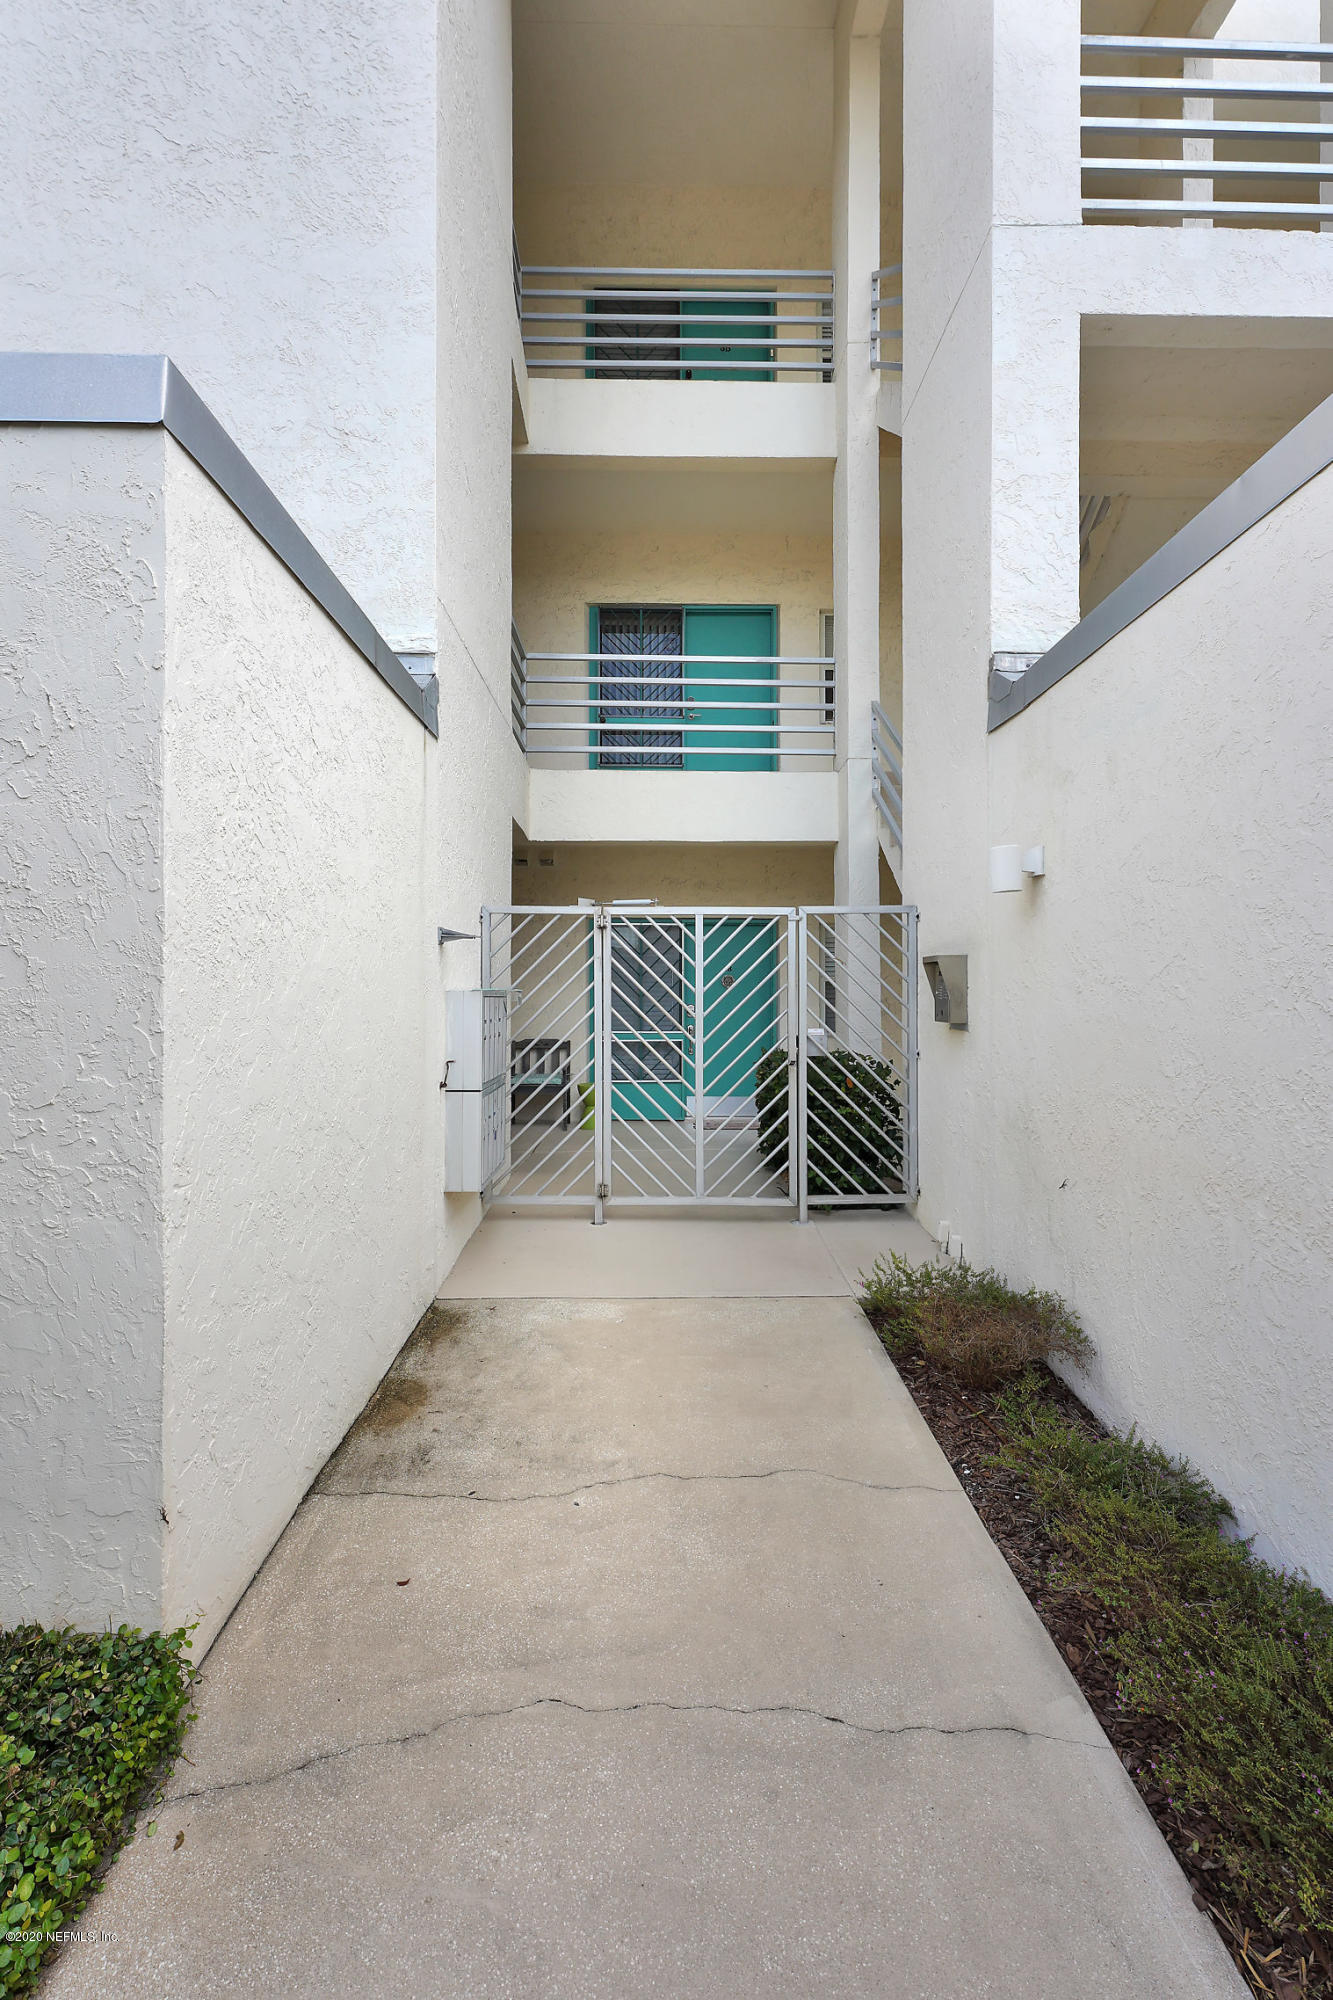 75 COMARES, ST AUGUSTINE, FLORIDA 32080, 2 Bedrooms Bedrooms, ,2 BathroomsBathrooms,Residential,For sale,COMARES,1072009